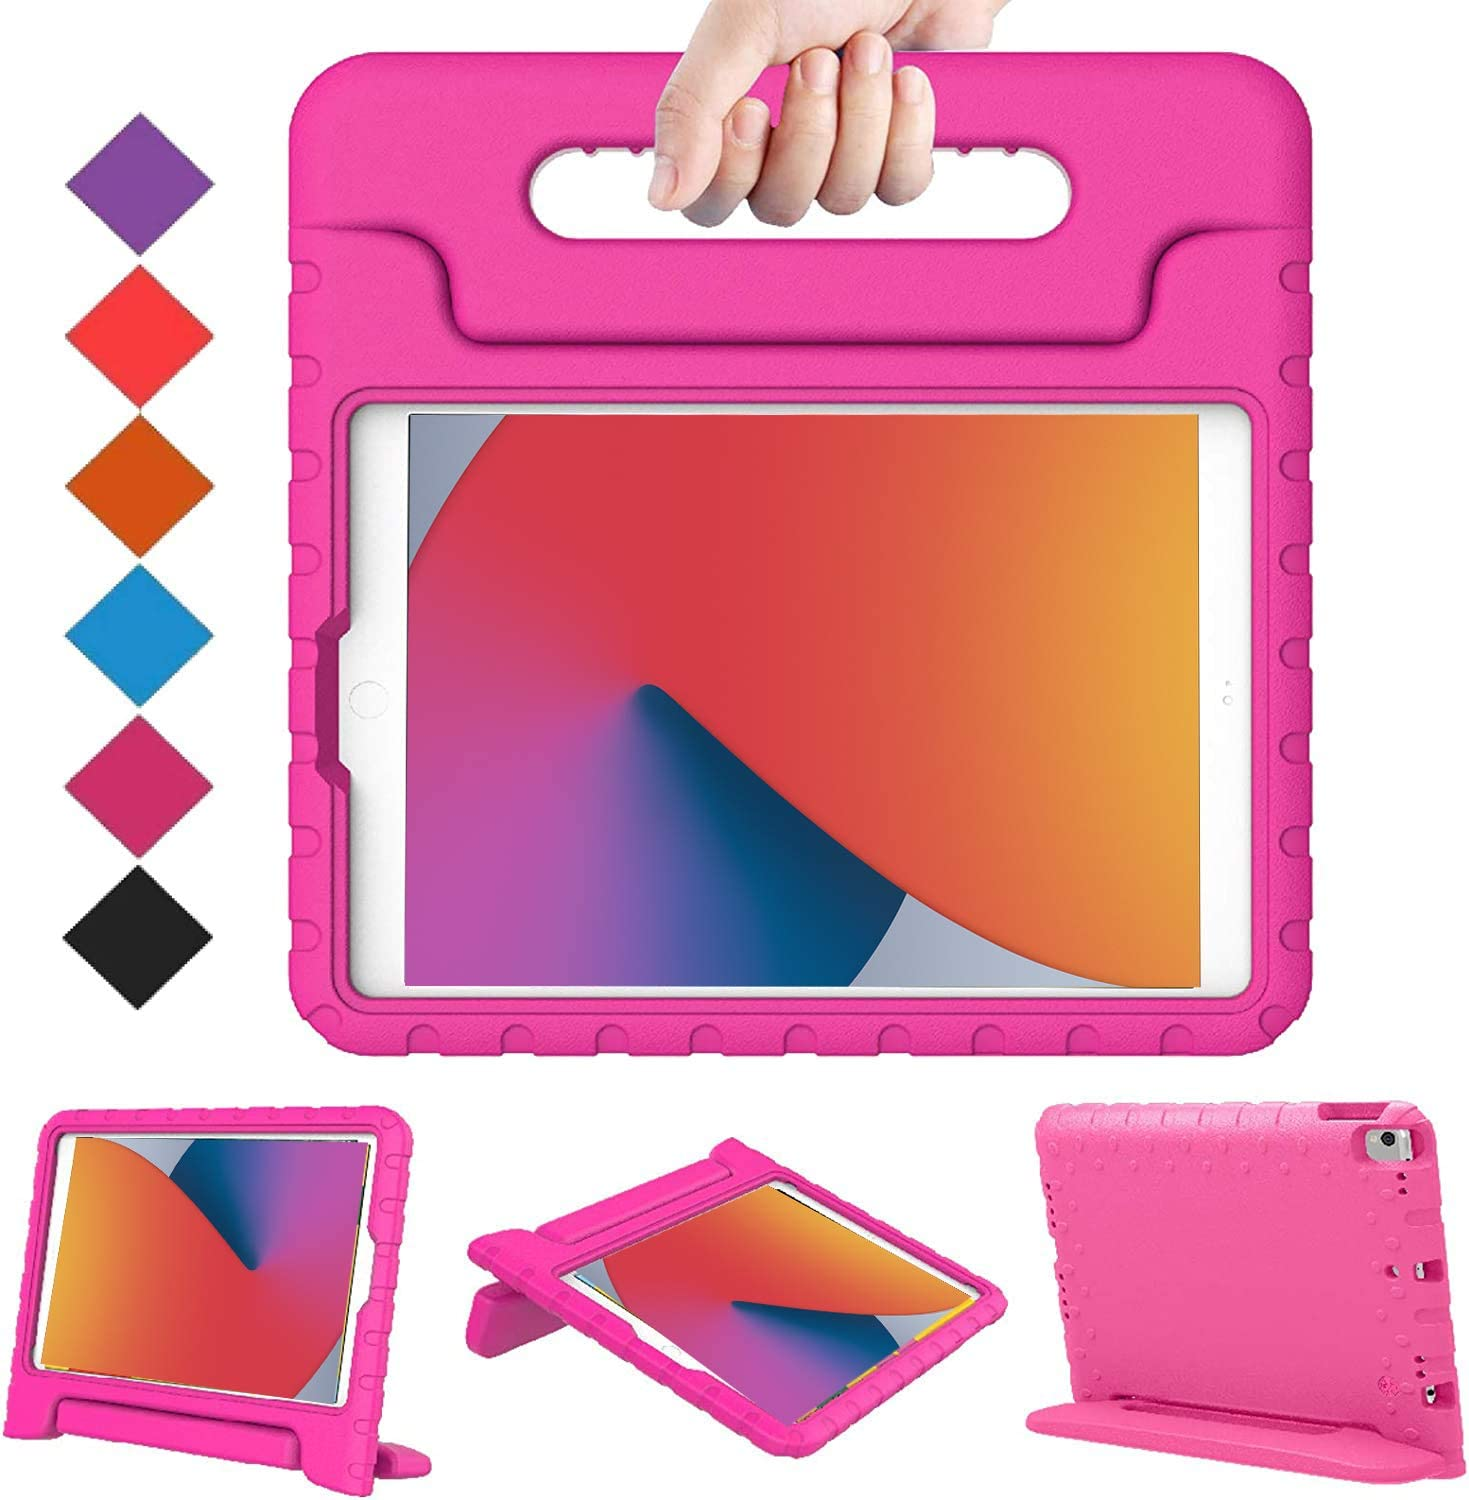 "BMOUO New iPad 10.2 2020/20219 Kids Case, iPad 8th/7th Generation Case, iPad 10.2 2020/2019 Case, Shockproof Light Weight Convertible Handle Stand Case for iPad 10.2"" Latest Model, Rose"